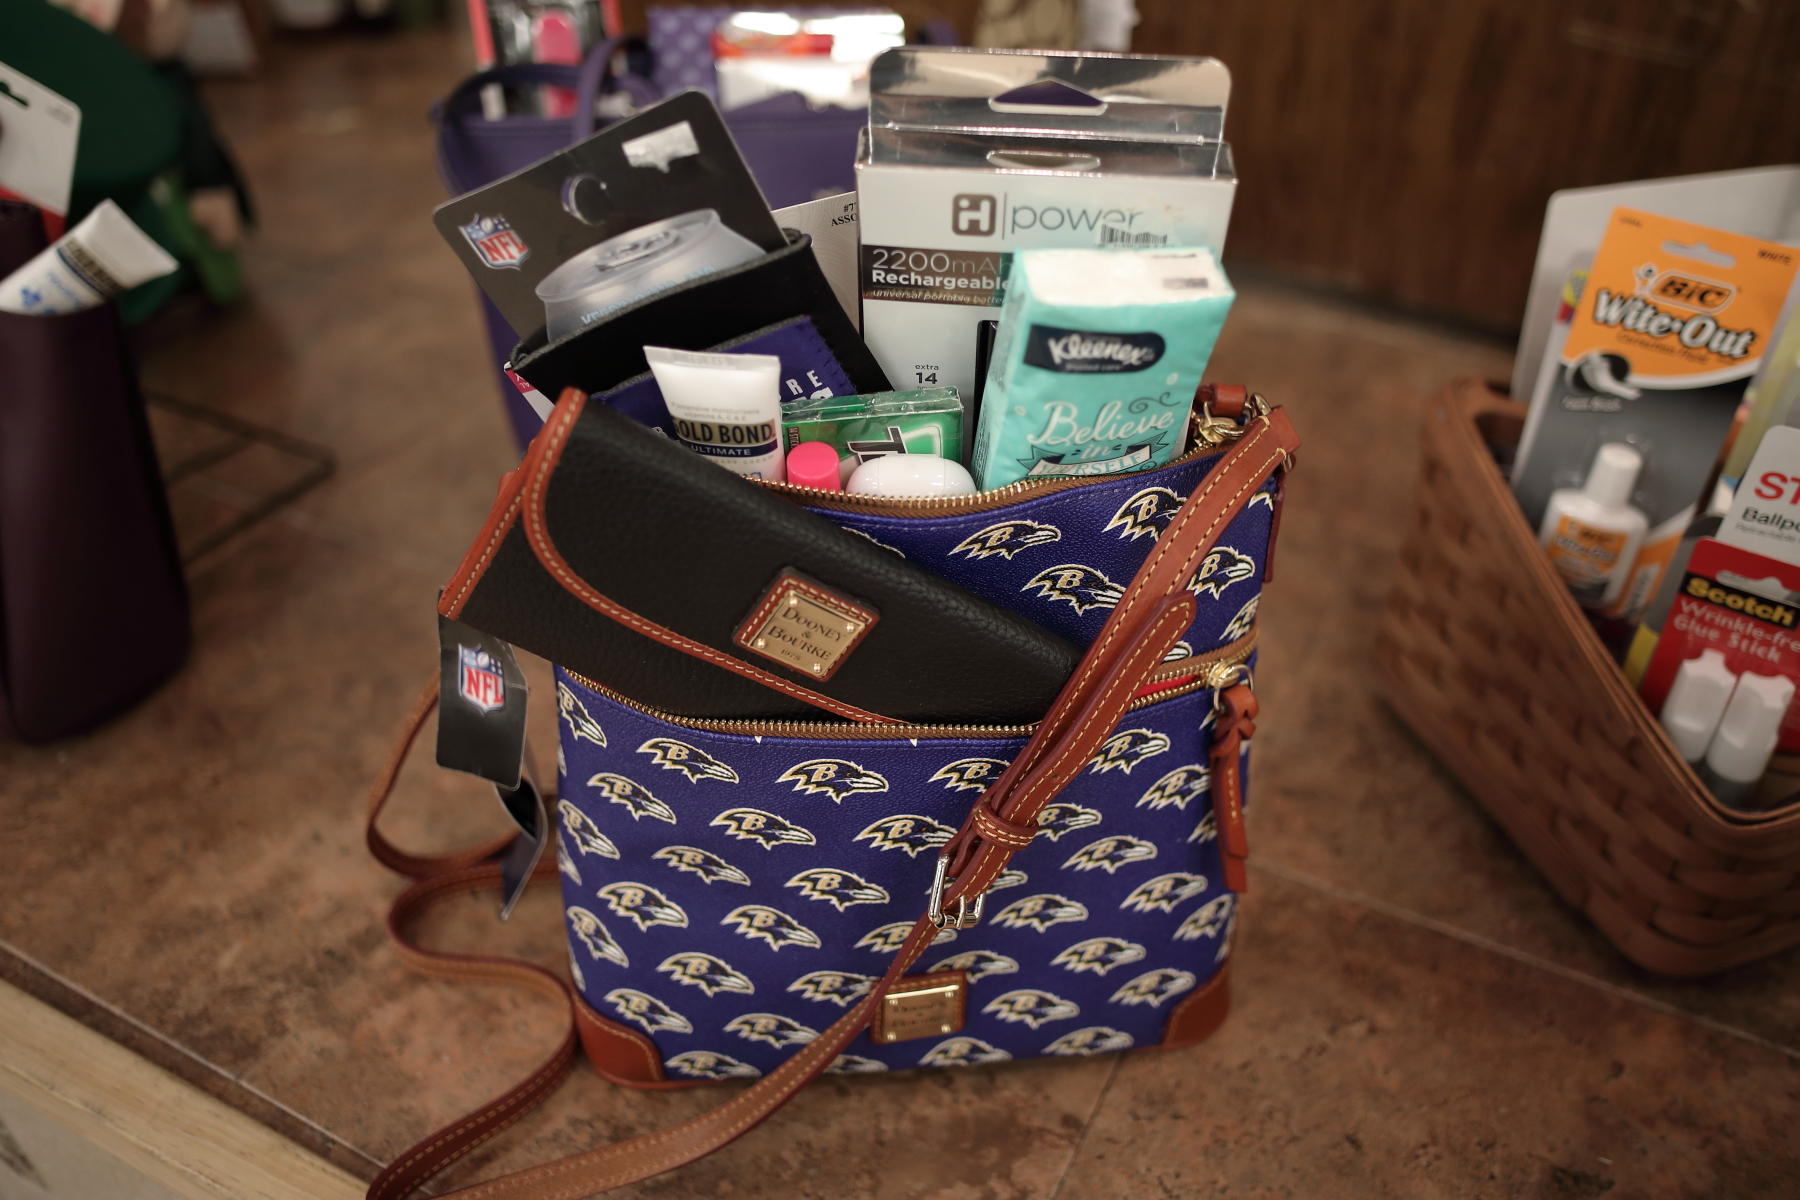 Dooney & Bourke Ravens handbag with a portable powerbank and personal items such as lotion, lip balm, and gum.